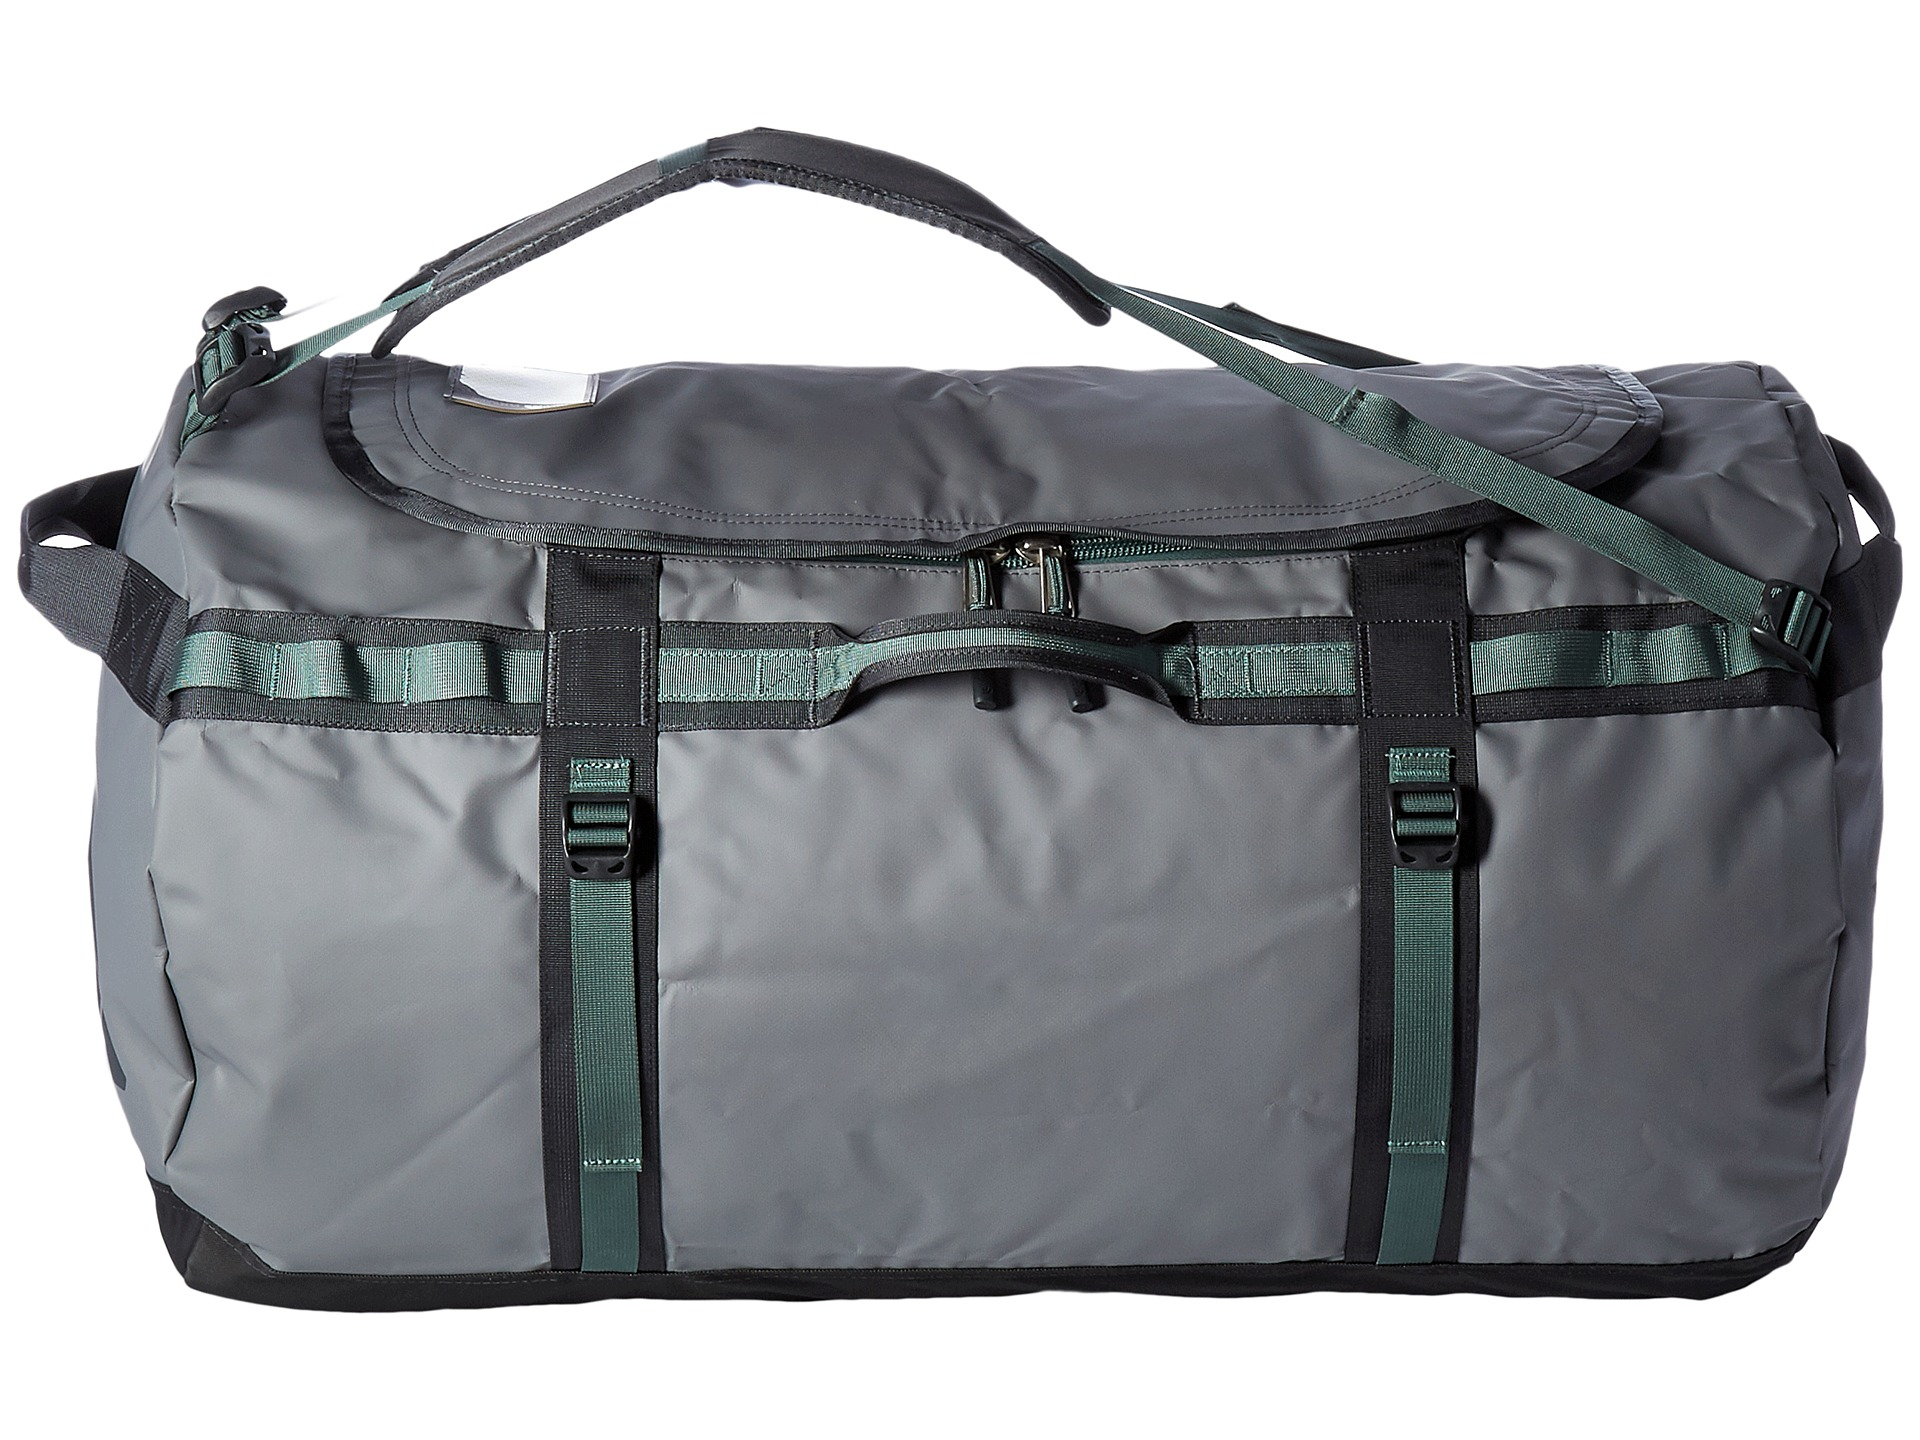 21153fd9c4 Lyst - The North Face Base Camp Duffel - Xl in Gray for Men